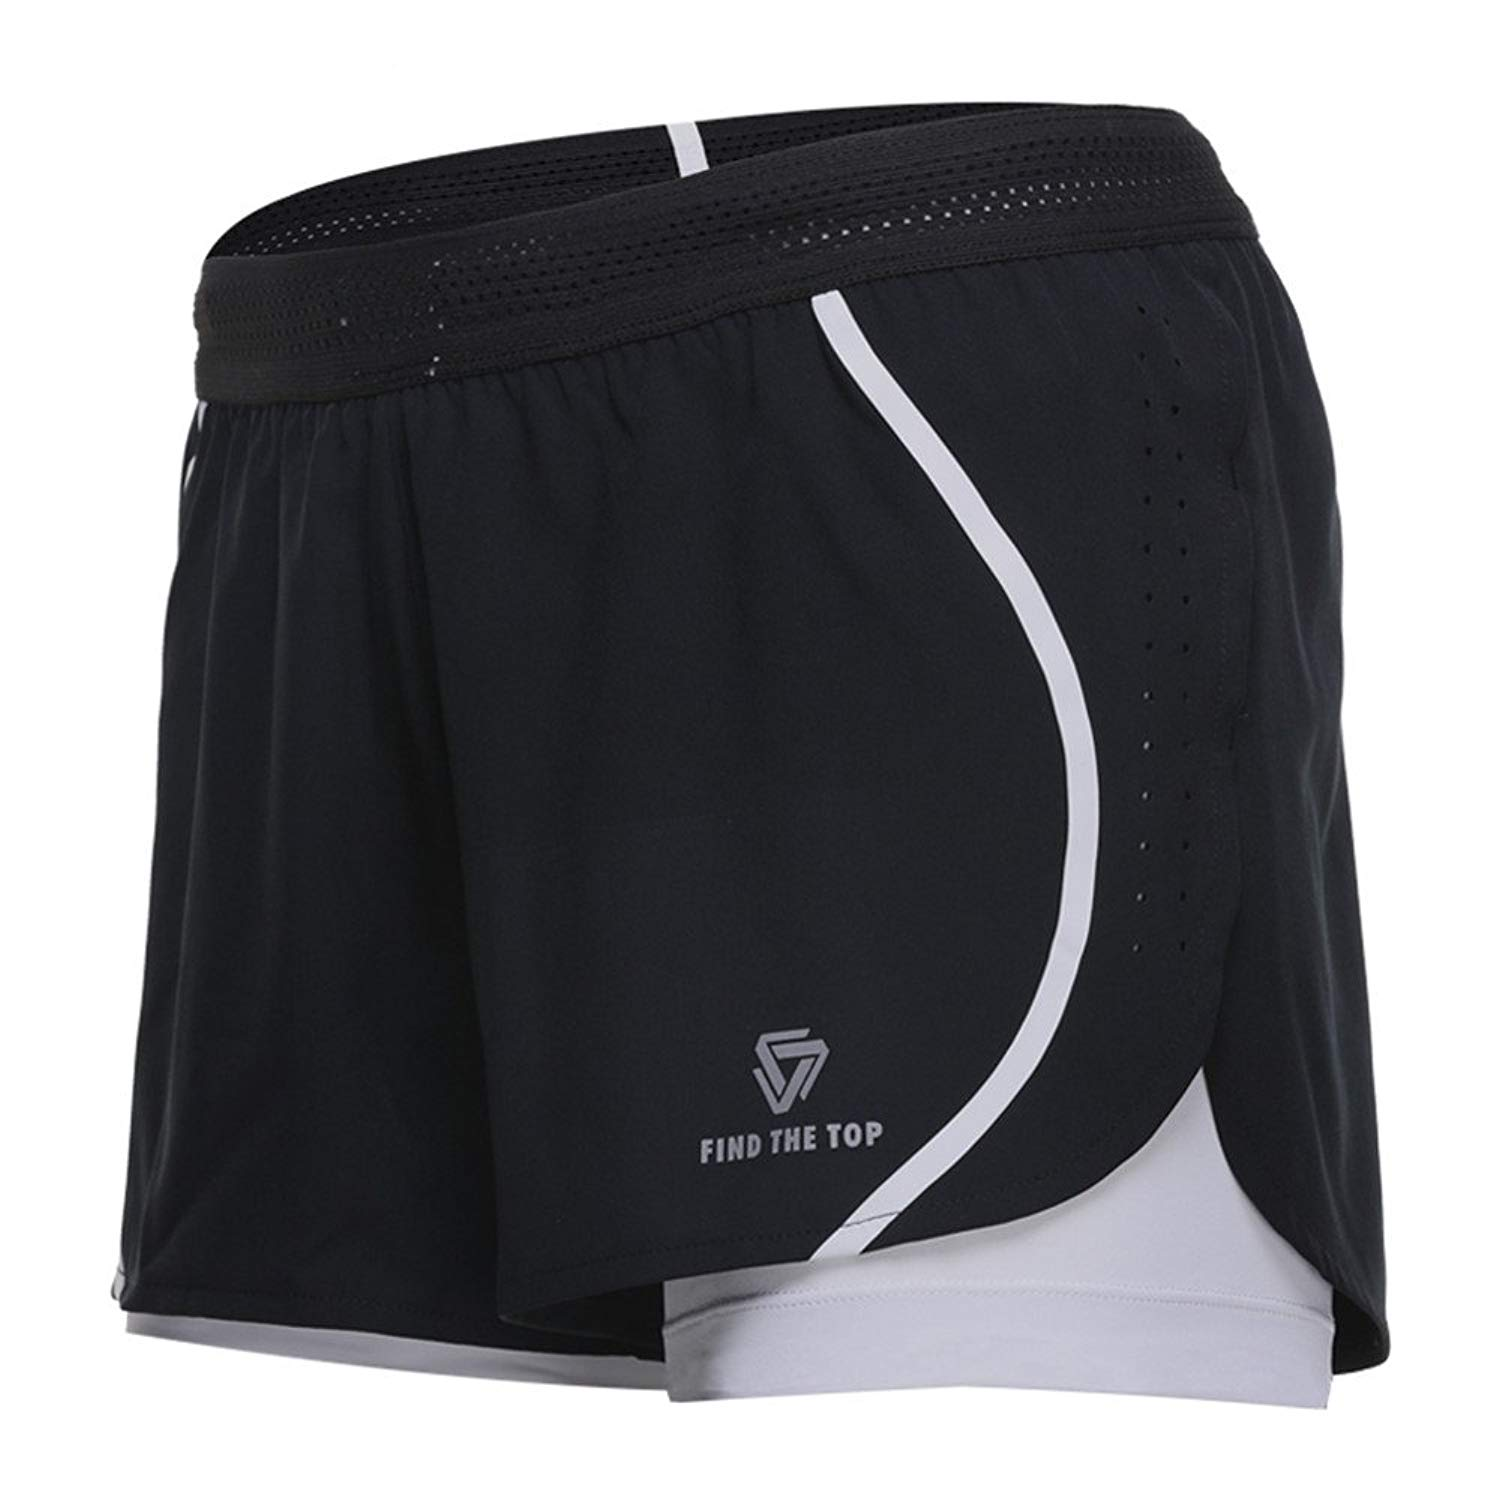 VANSYDICAL Women 2 in 1 Yoga Shorts Quick Dry Fitness Gym Shorts Cool Lades Running Jogging Sports Shorts Plus Size Shorts